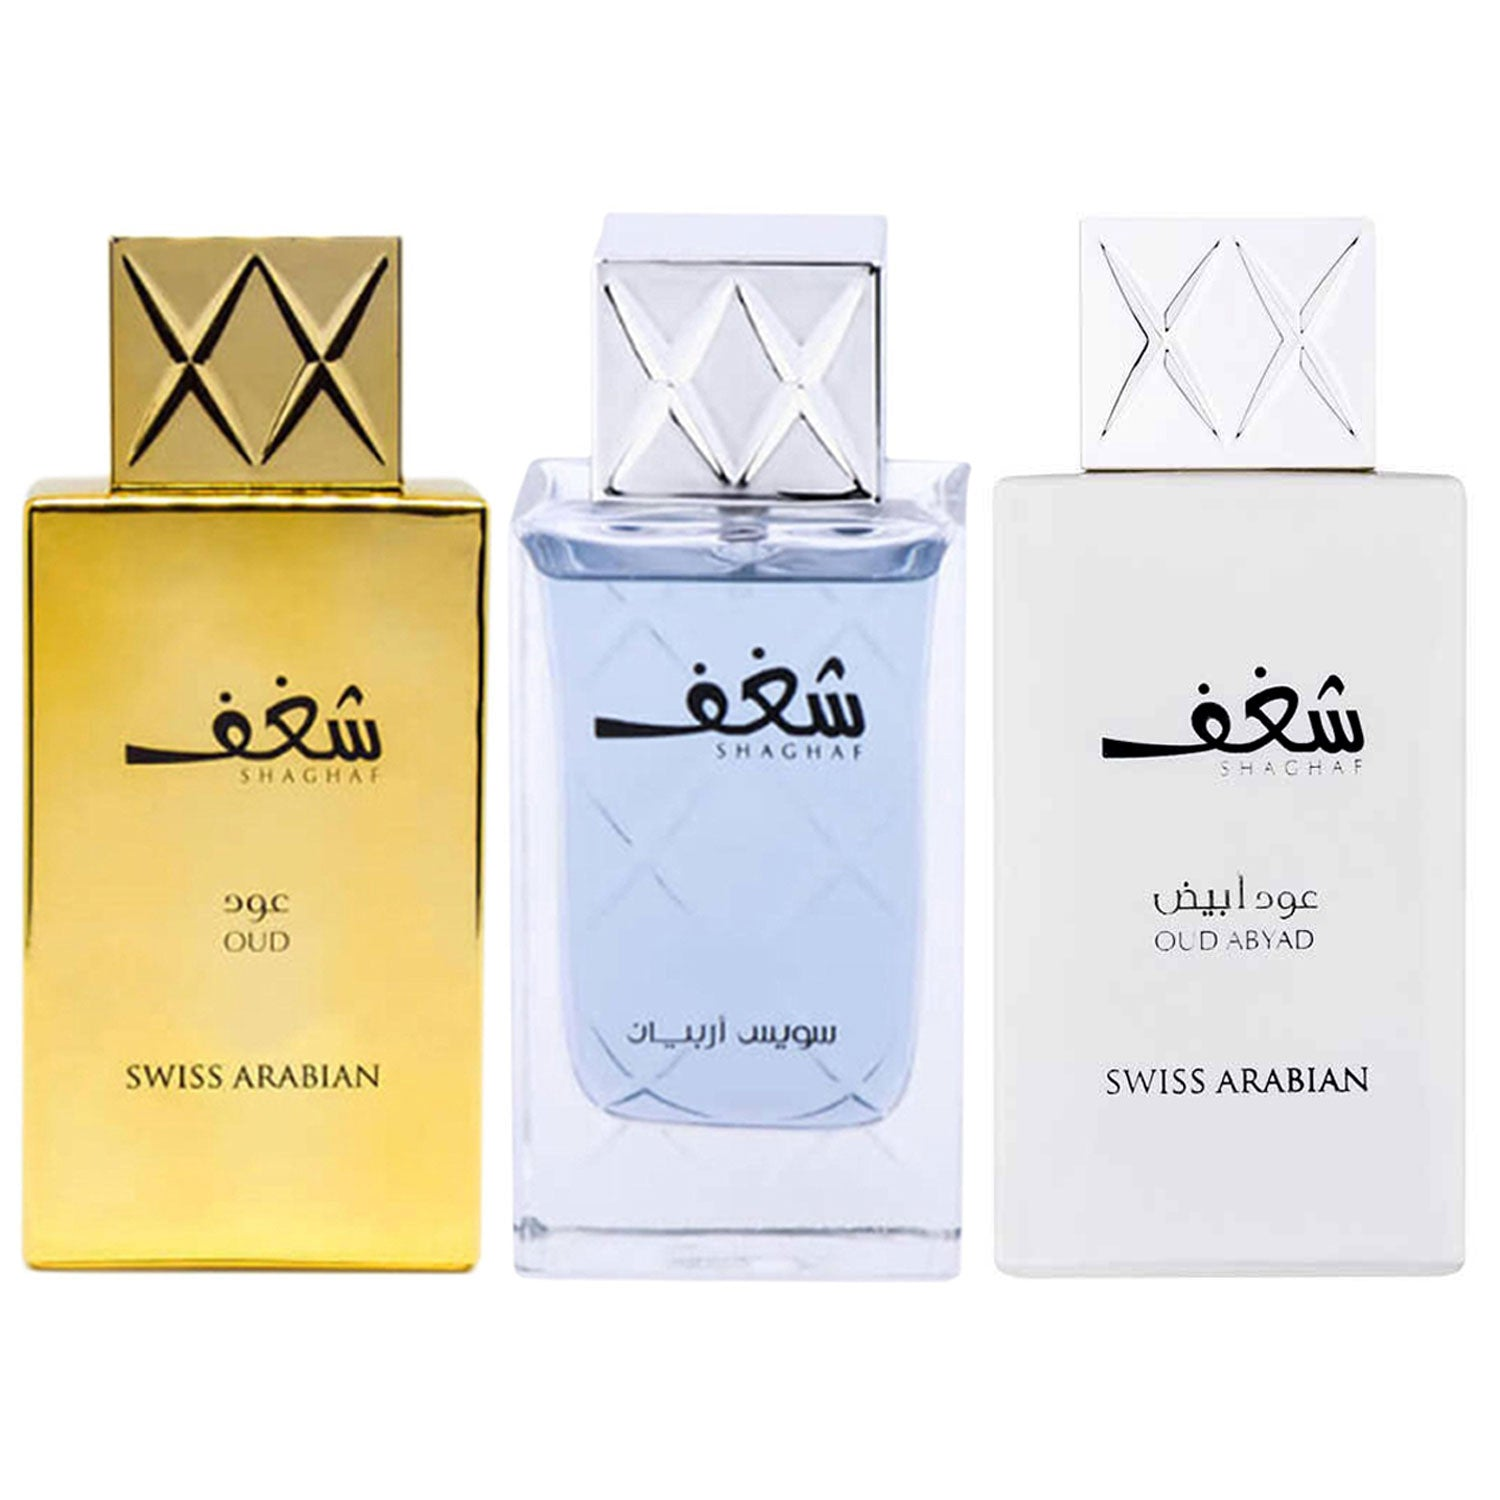 Shaghaf Oud and Oud Abyad and Shaghaf for Men